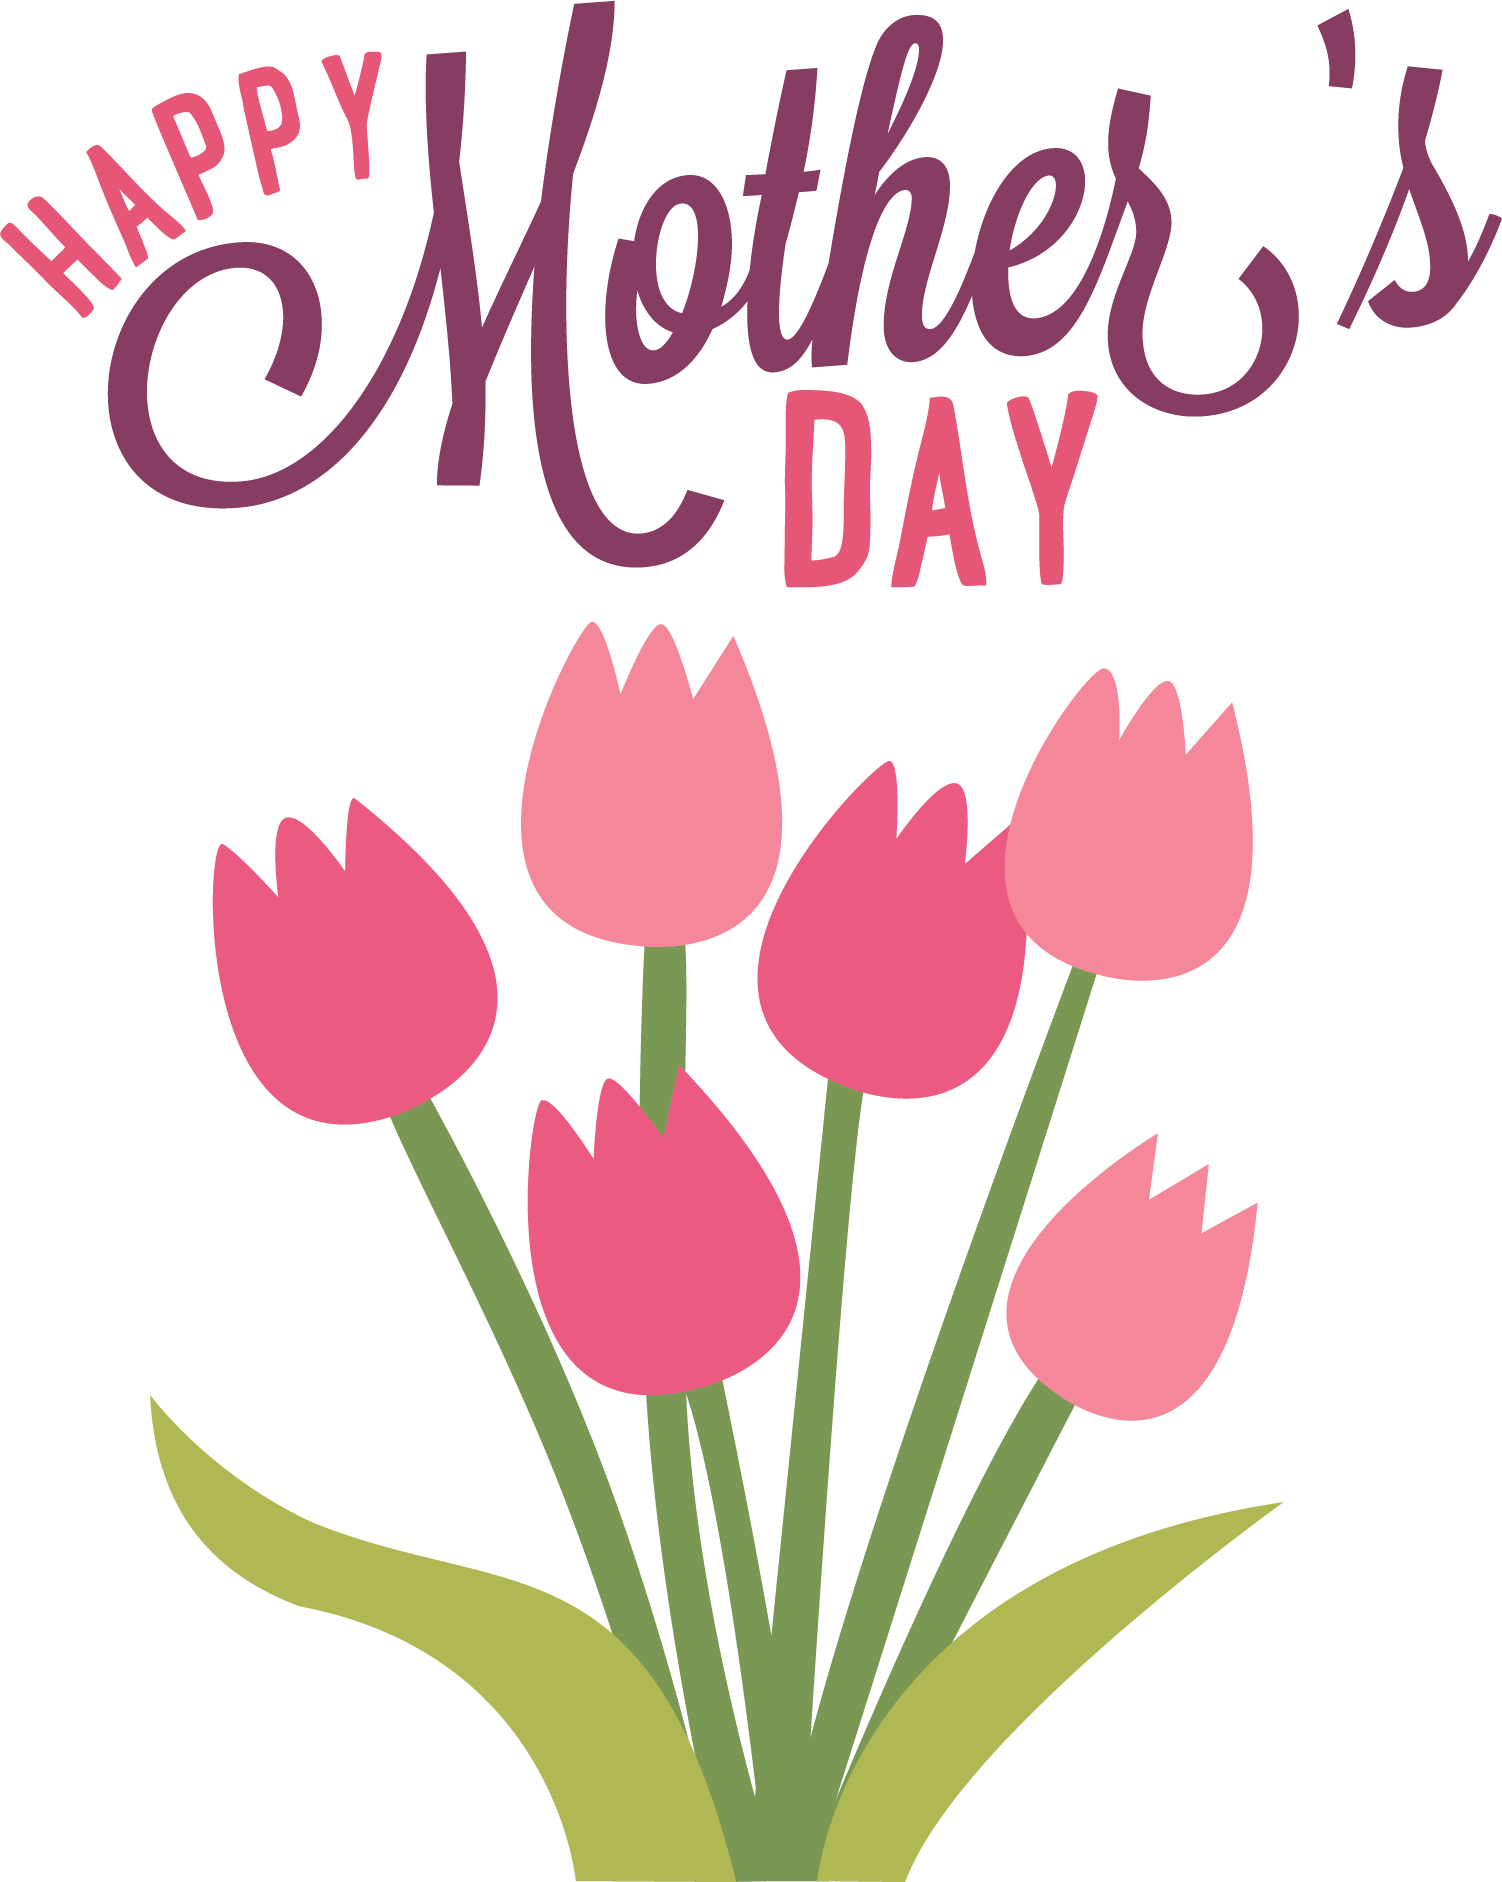 Happy Mothers Day Pictures Pics Wallpapers Quotes Wishes Messages Download Happy Mothers Day Messages Happy Mothers Day Images Happy Mothers Day Pictures